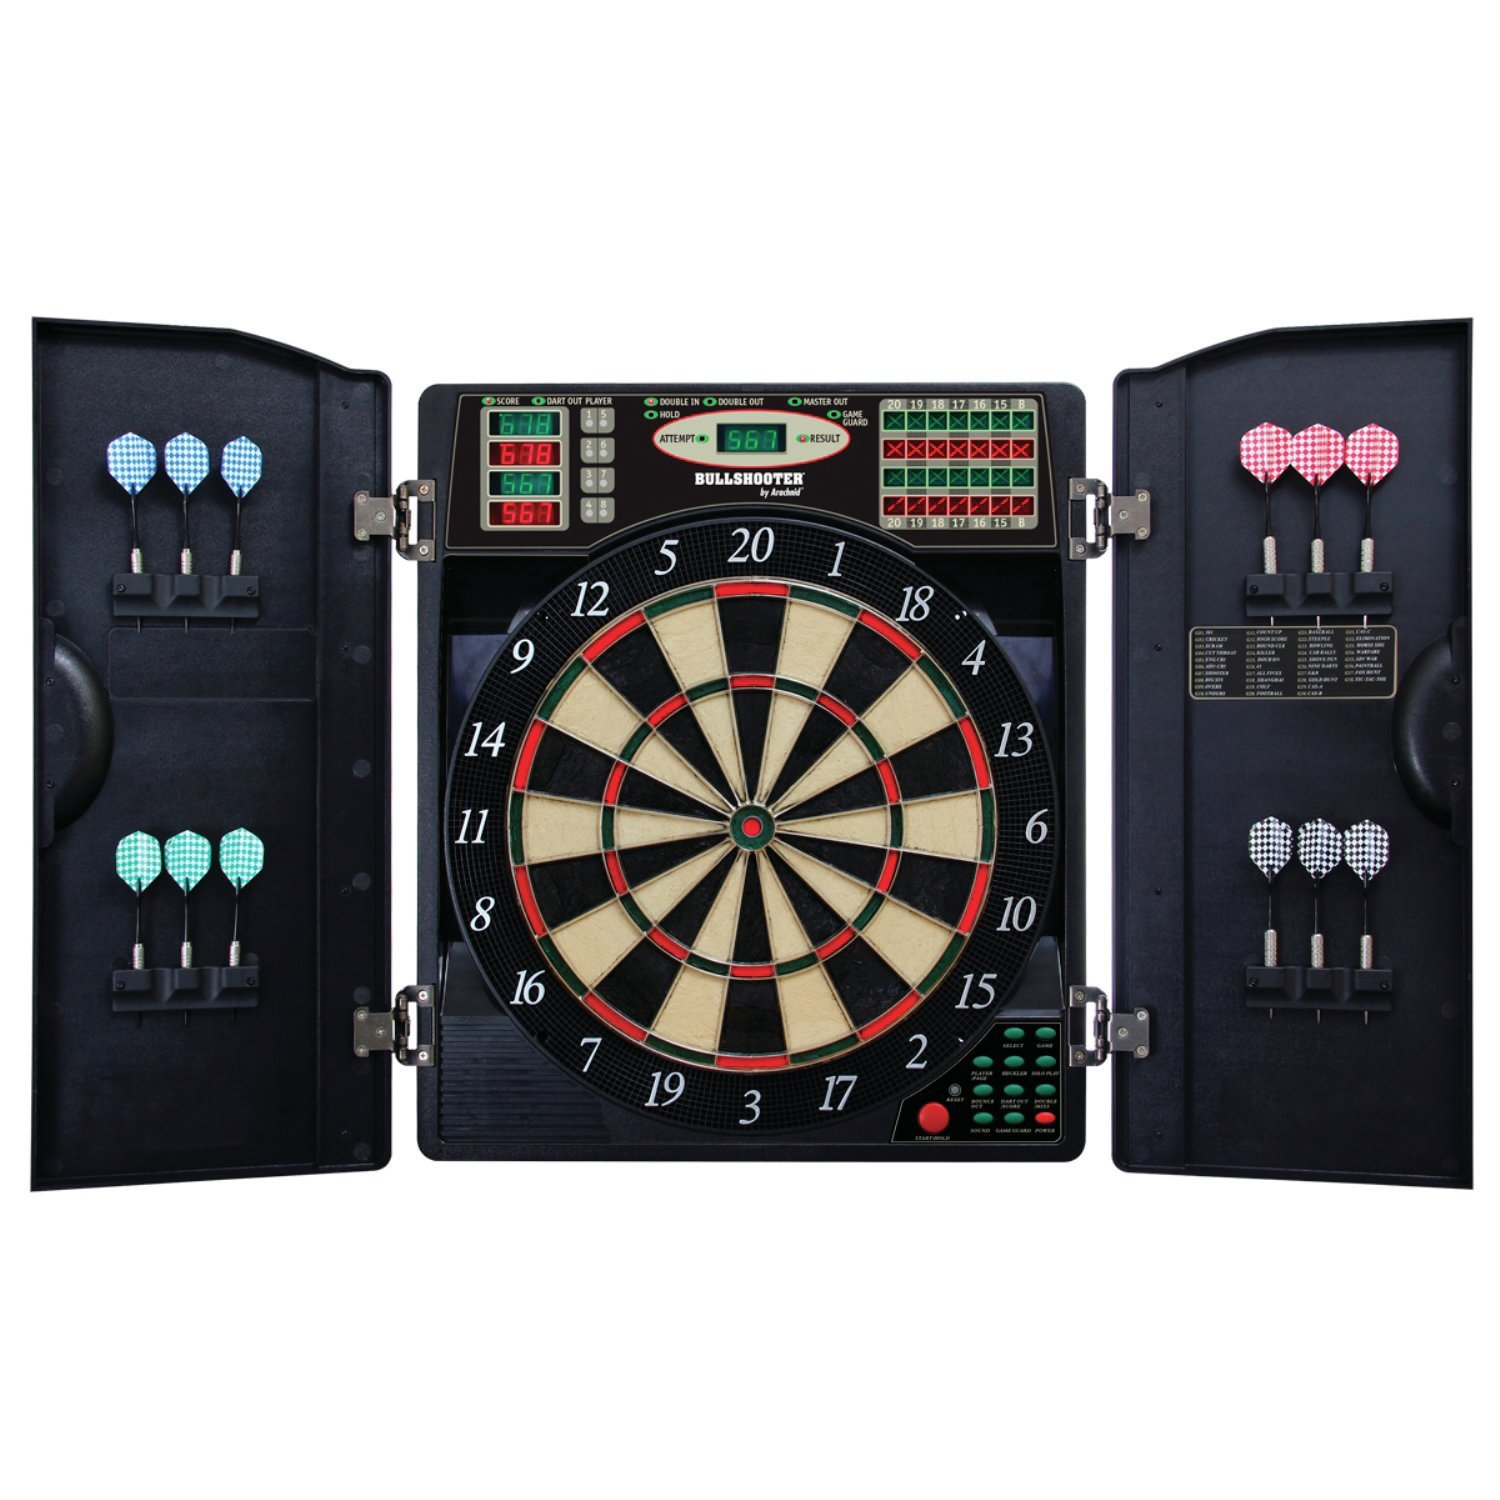 Best Selling Most Popular Home Playroom Bar Authentic Multi Player Pro Model Electronic Bulls-Eye Digital LED Dart Board- Full Lit Display- 38 Games 200+ Variations- 2 Set of Soft Tip/Steel Tip Darts